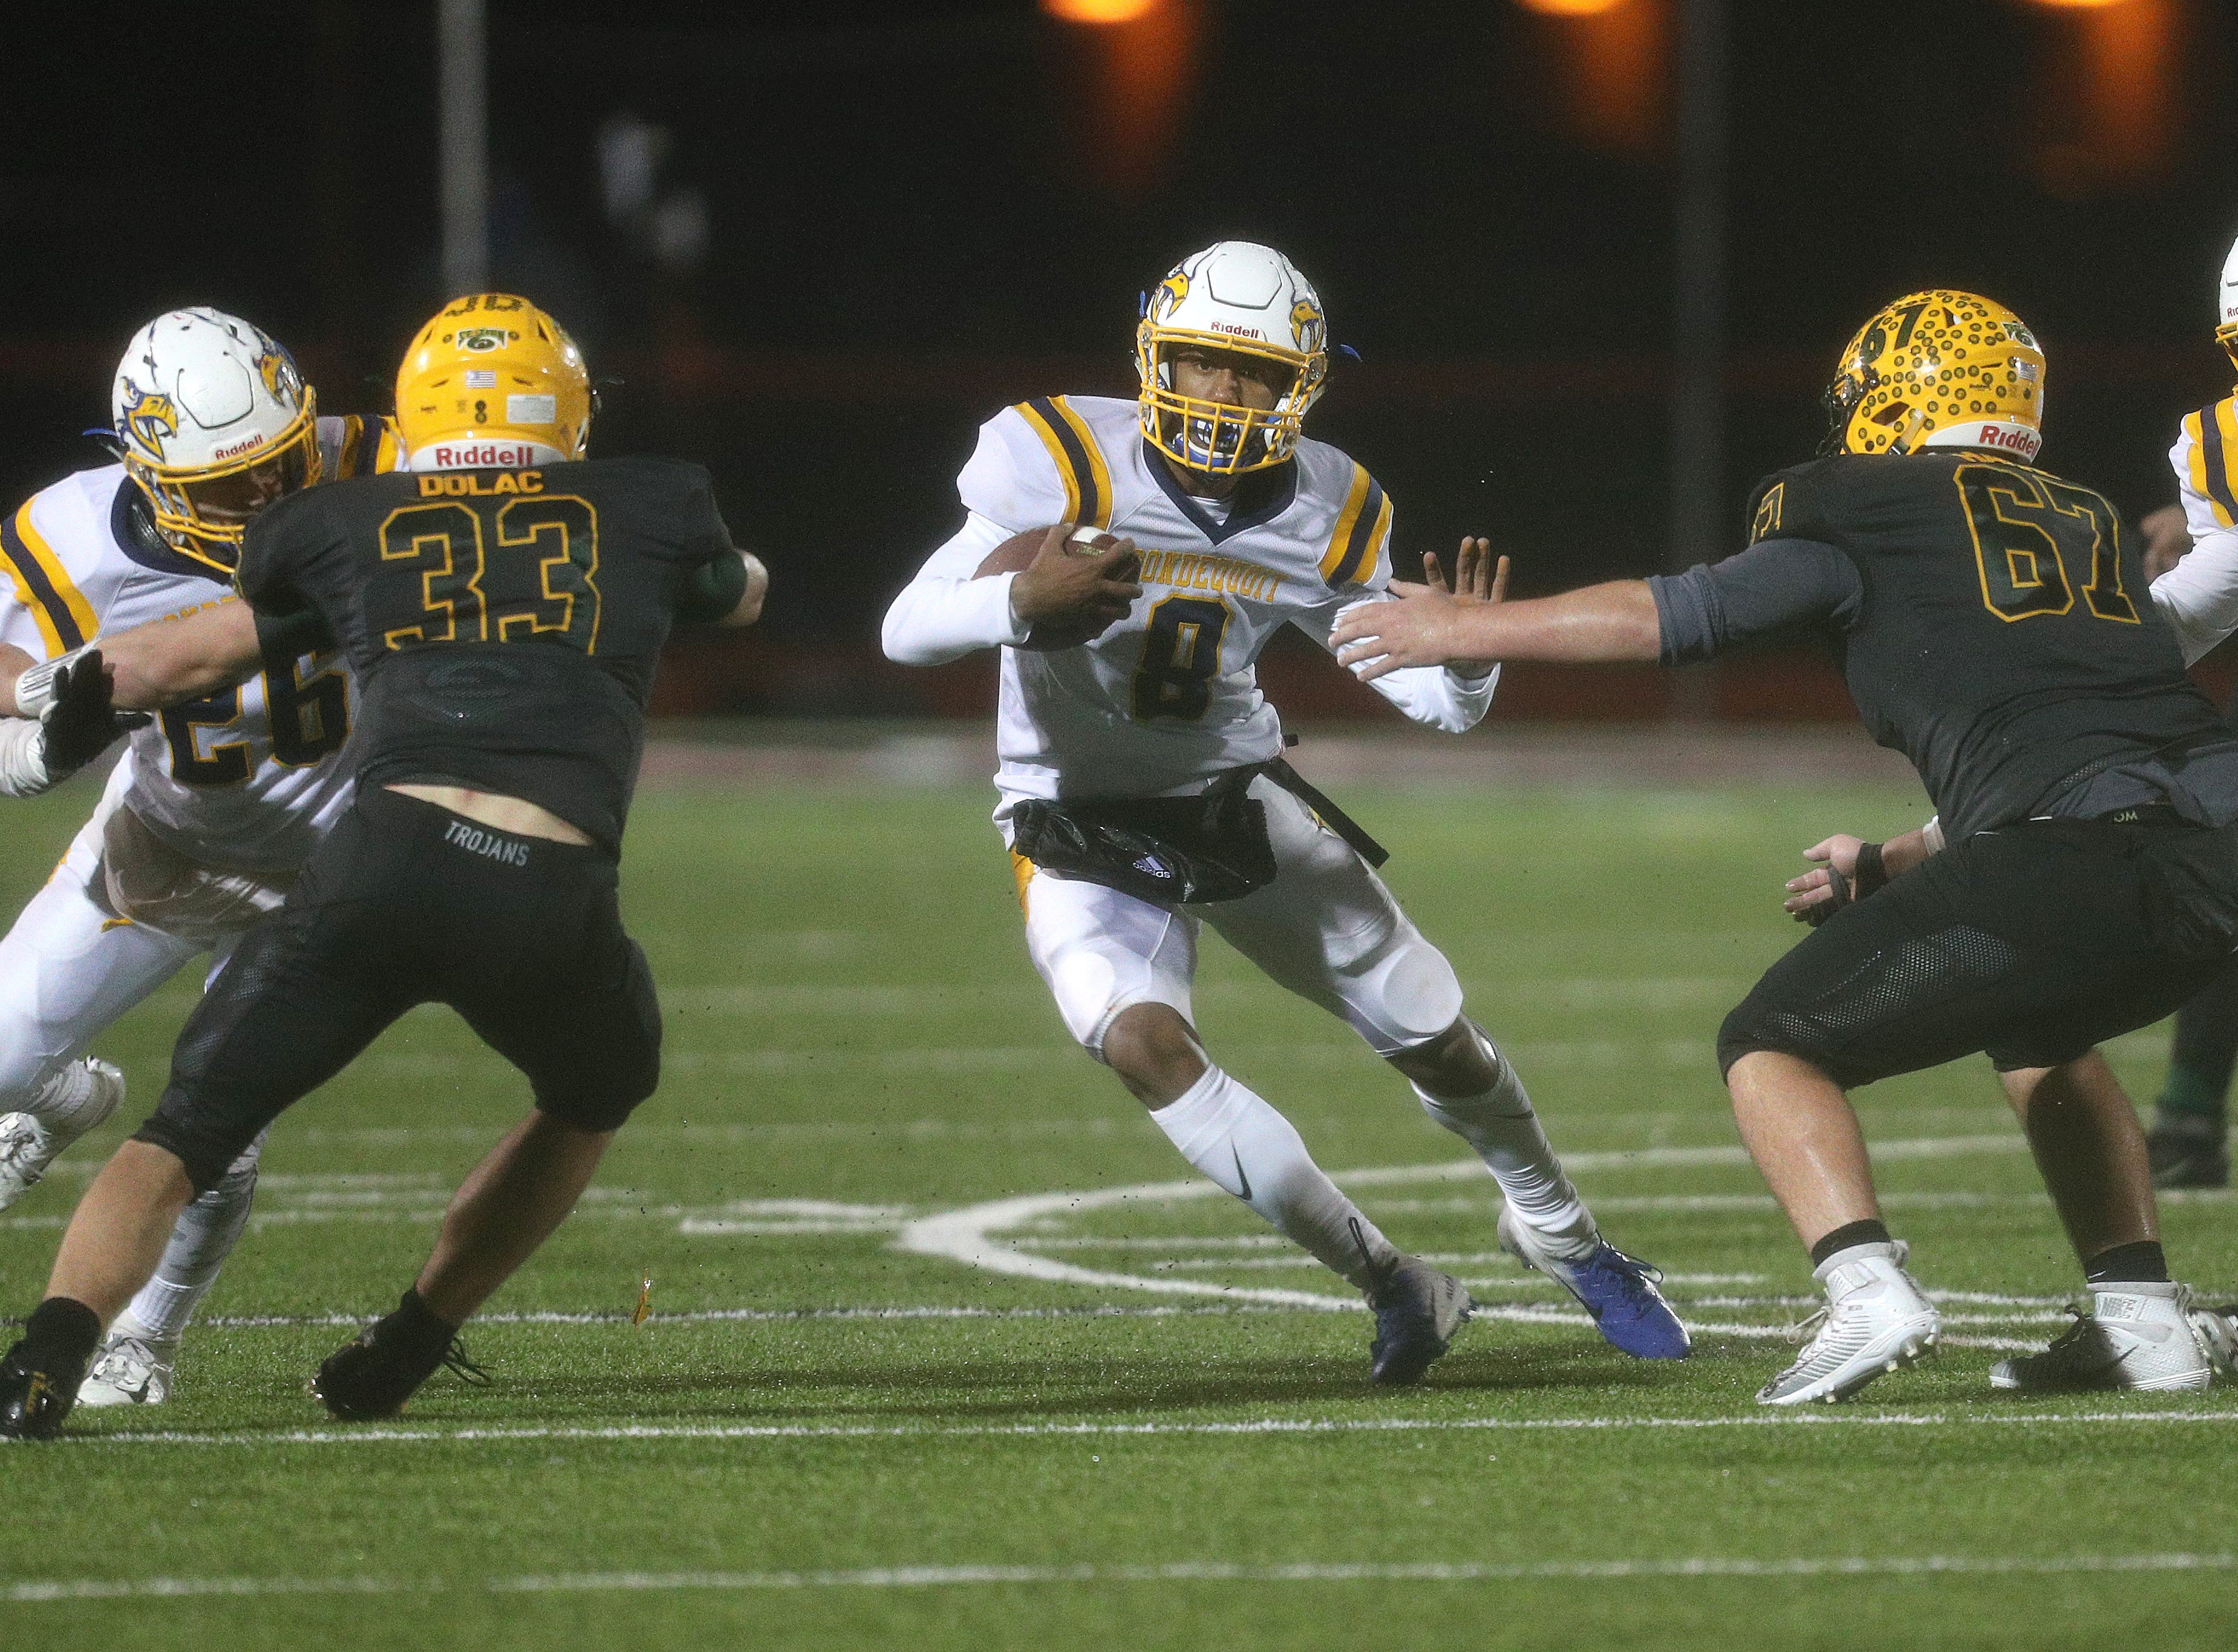 Irondequoit's Freddy June Jr. cuts back to find running room against West Seneca East.